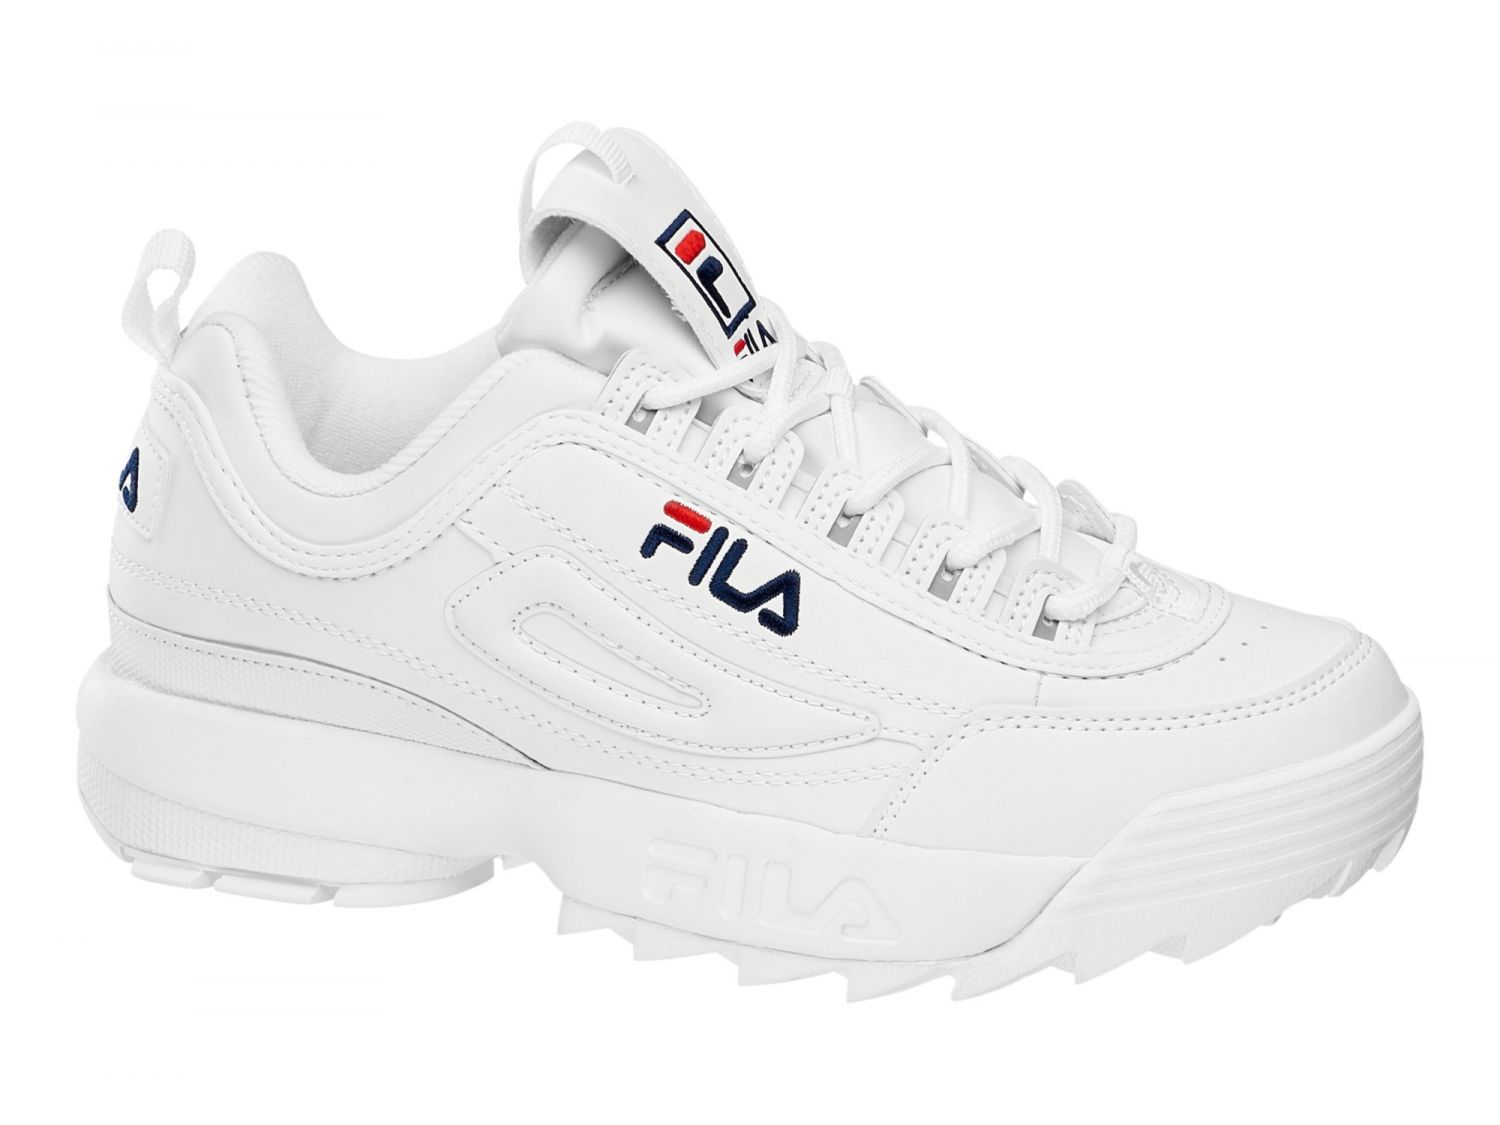 Low Top Mens Tennis Shoes